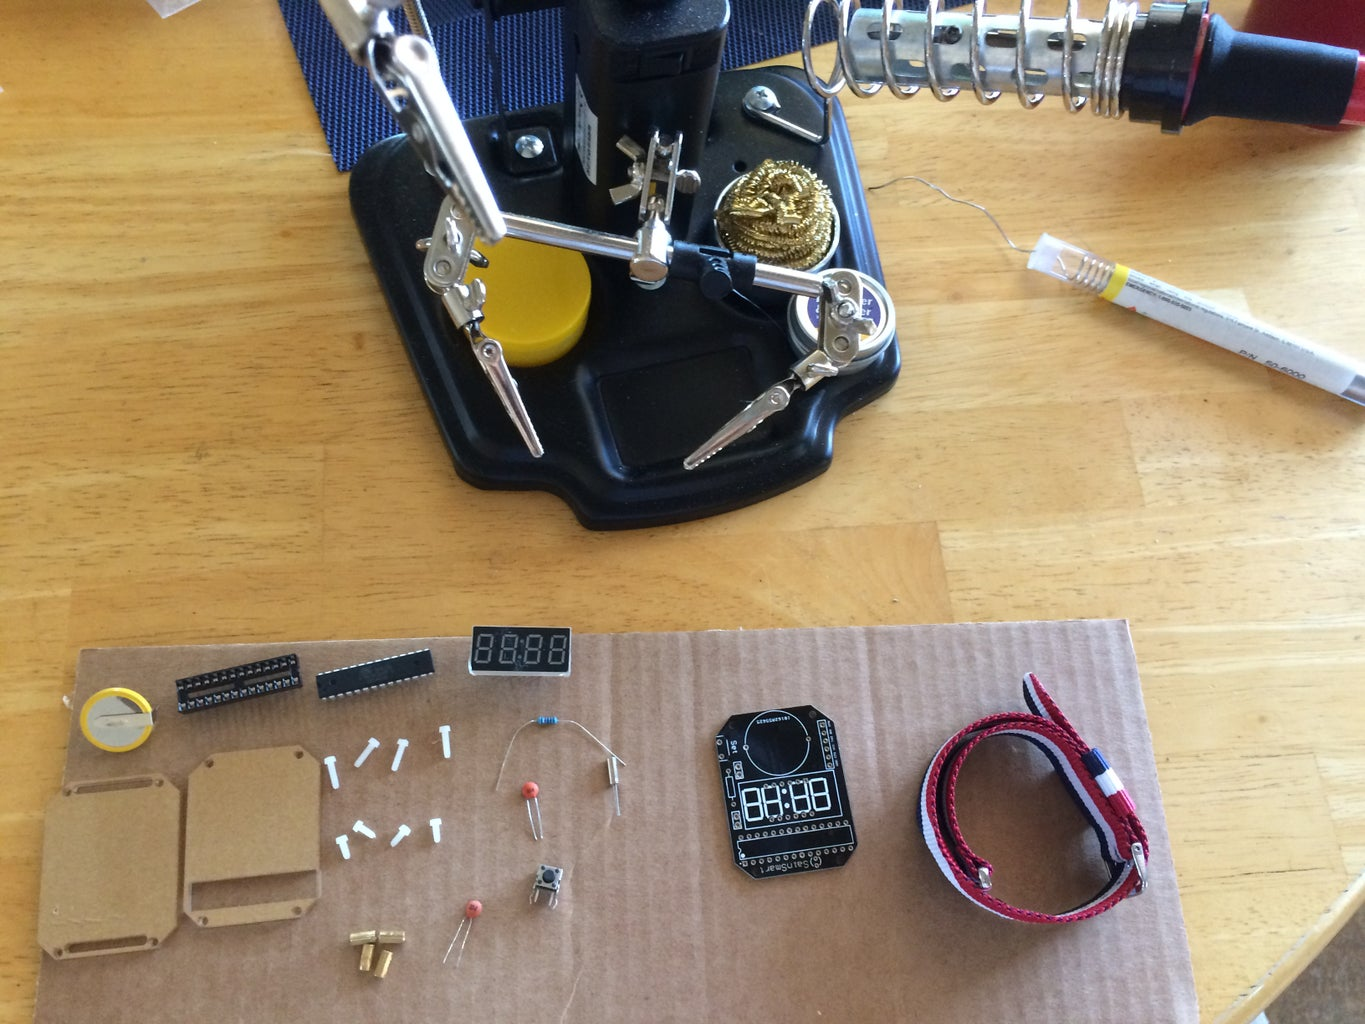 Organize the Components of the Watch and the Equipment Needed